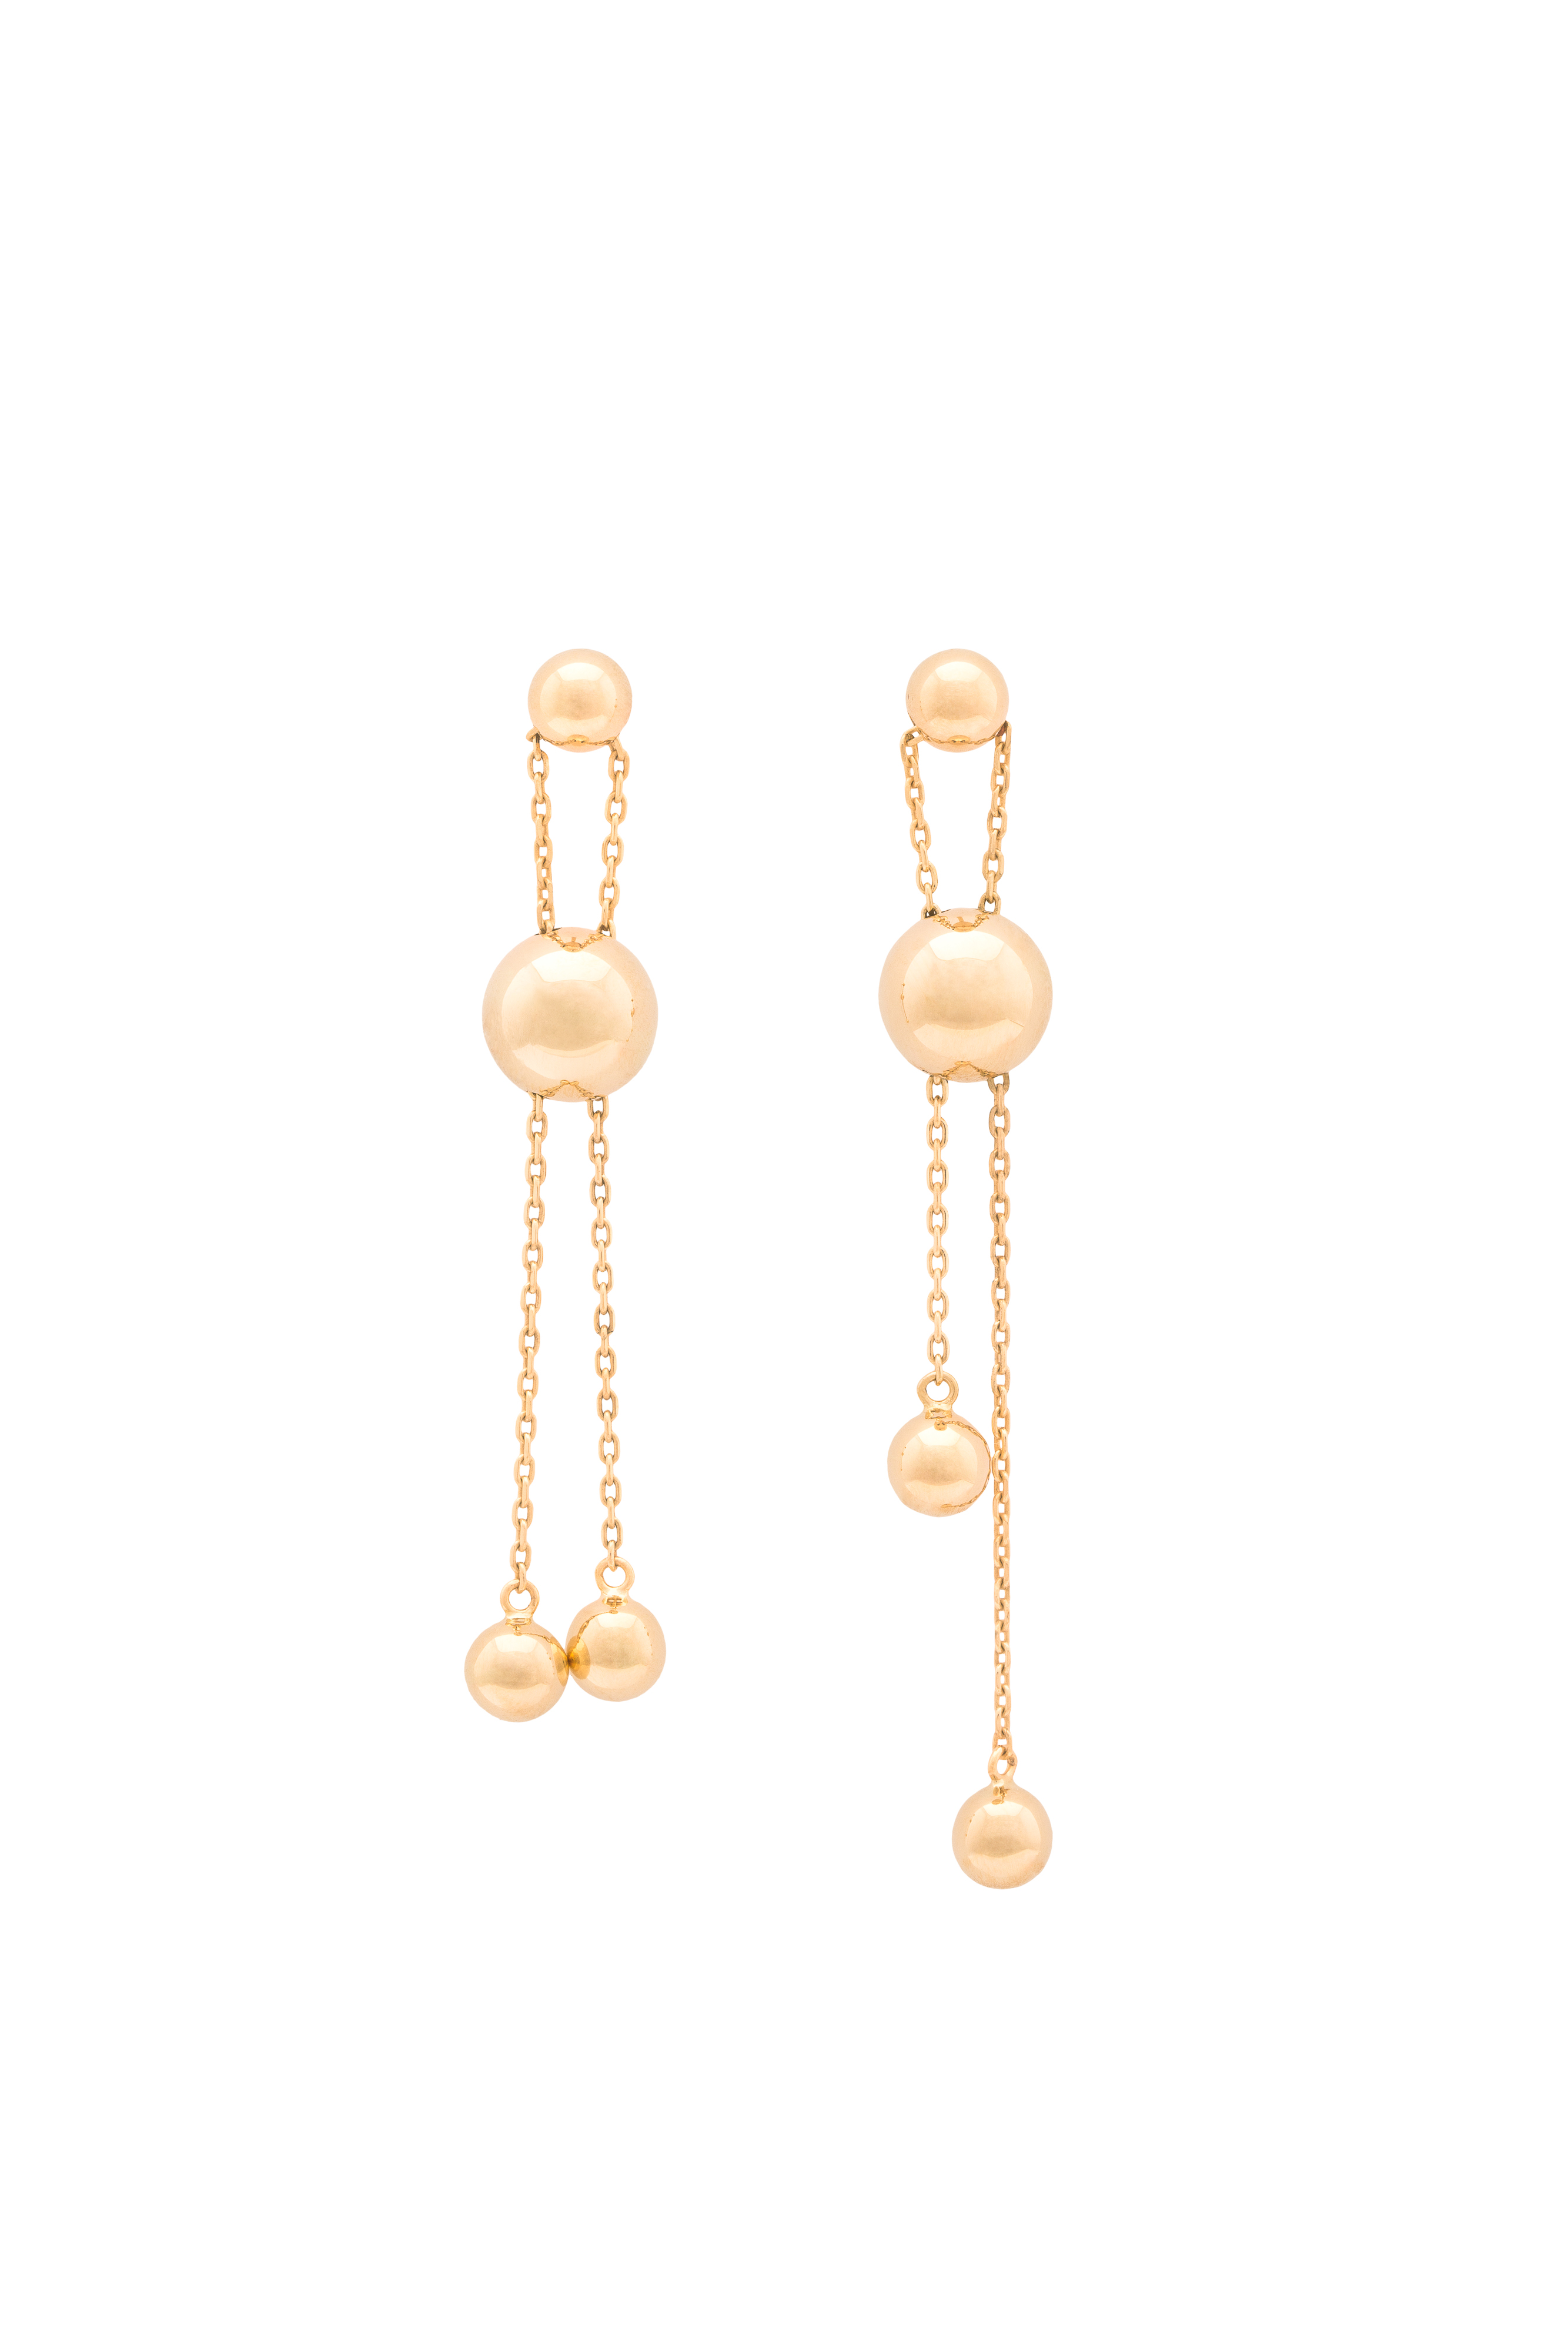 Big Orb Earrings by Guzema Fine Jewellery on curated-crowd.com